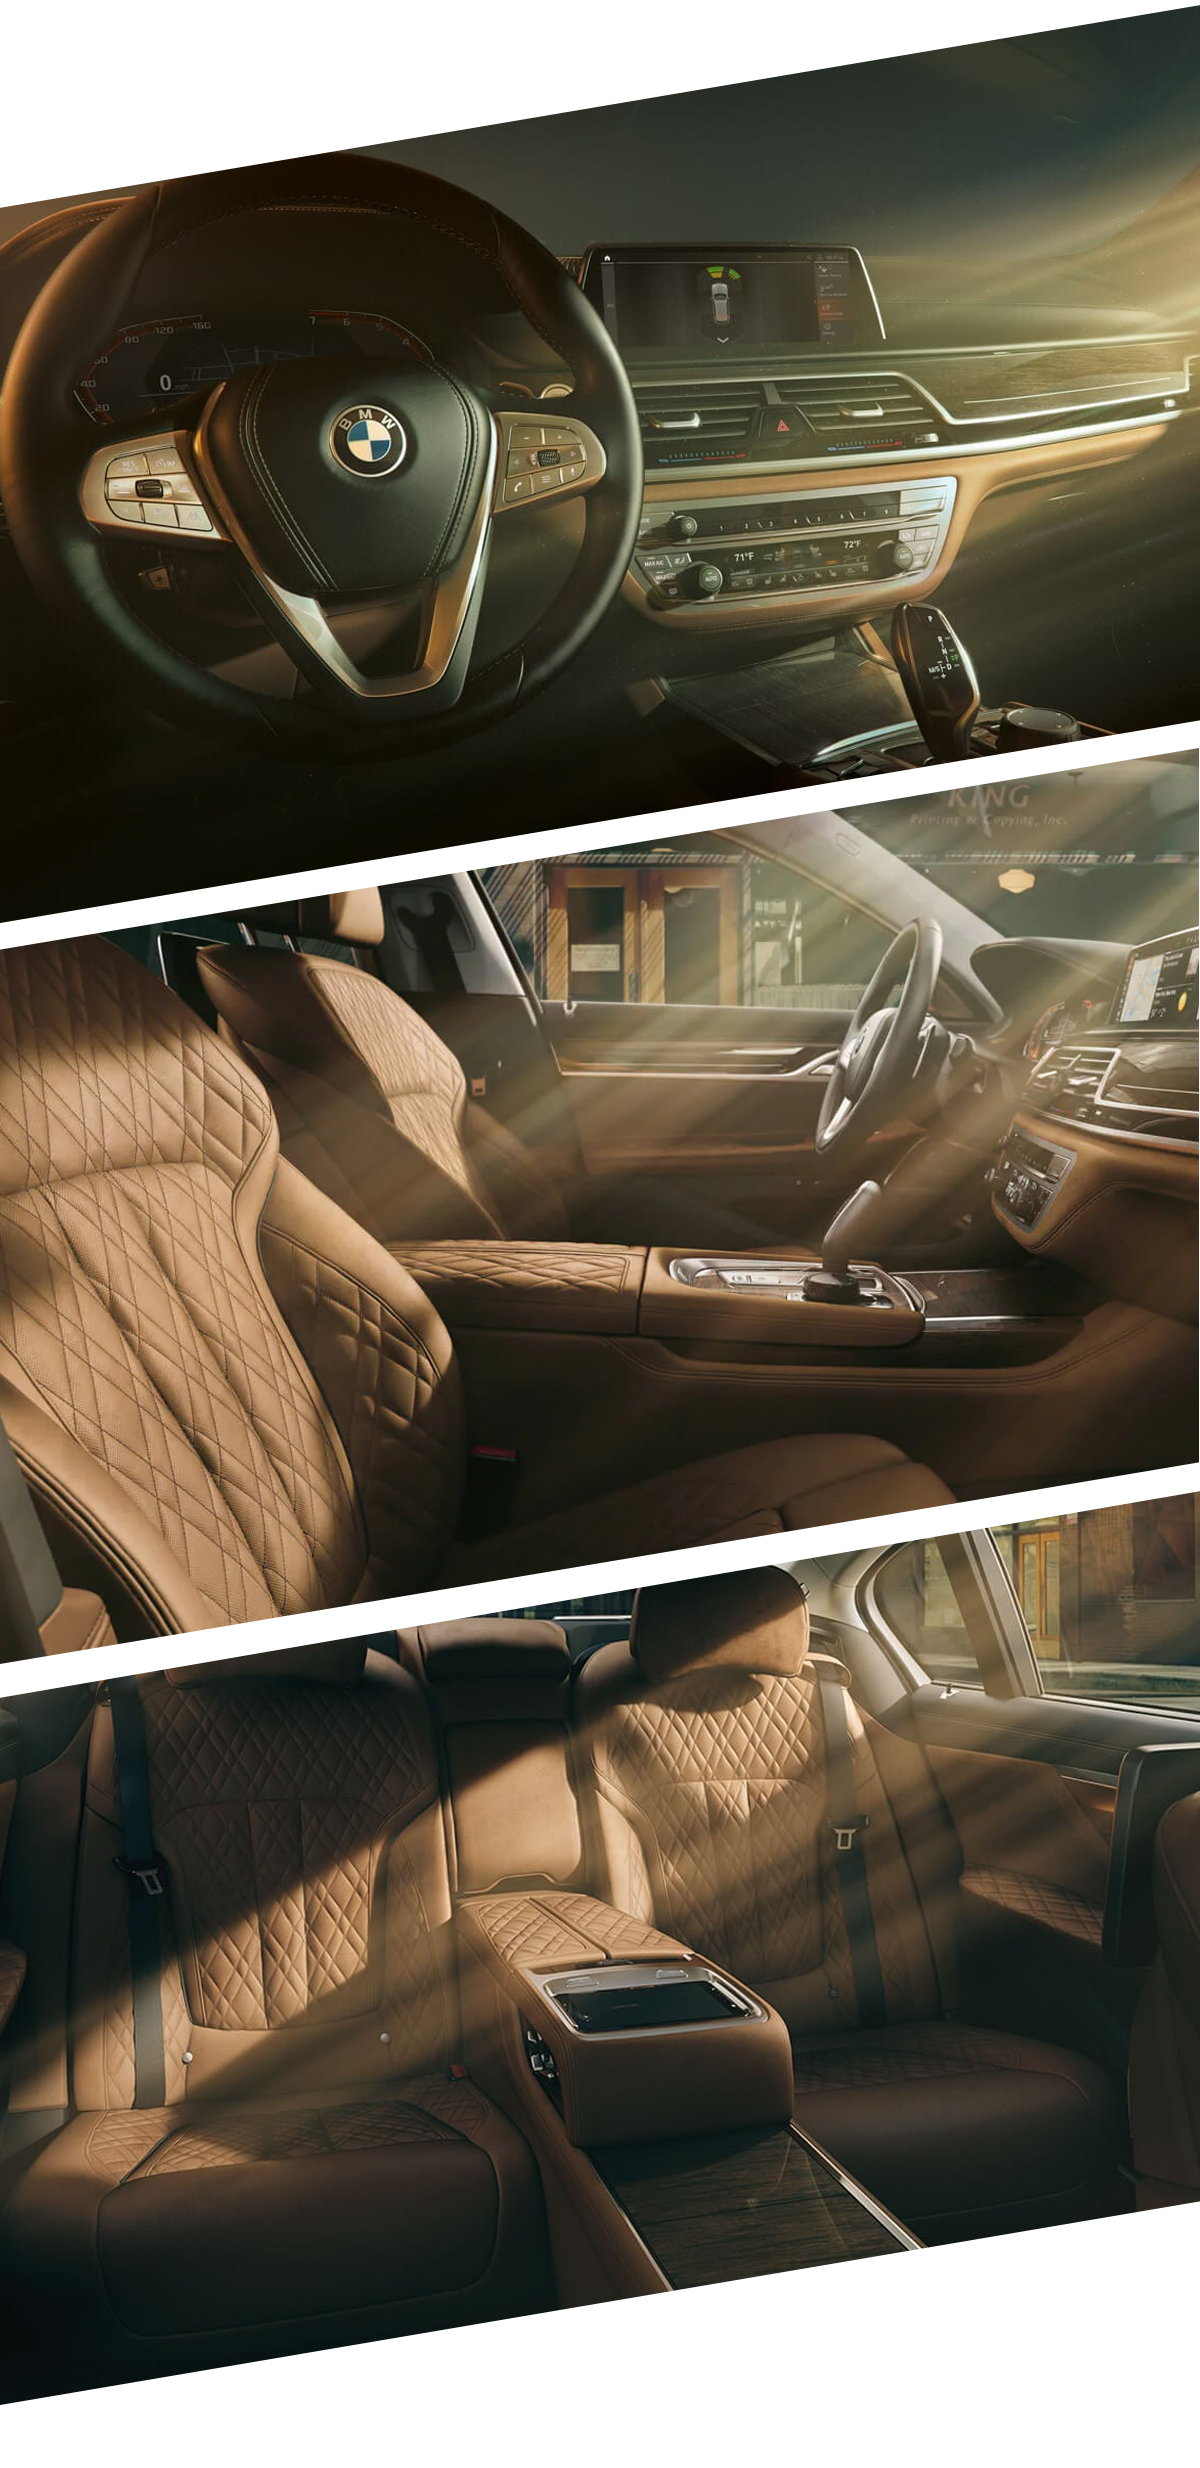 2021 BMW 7 Series Interior Images